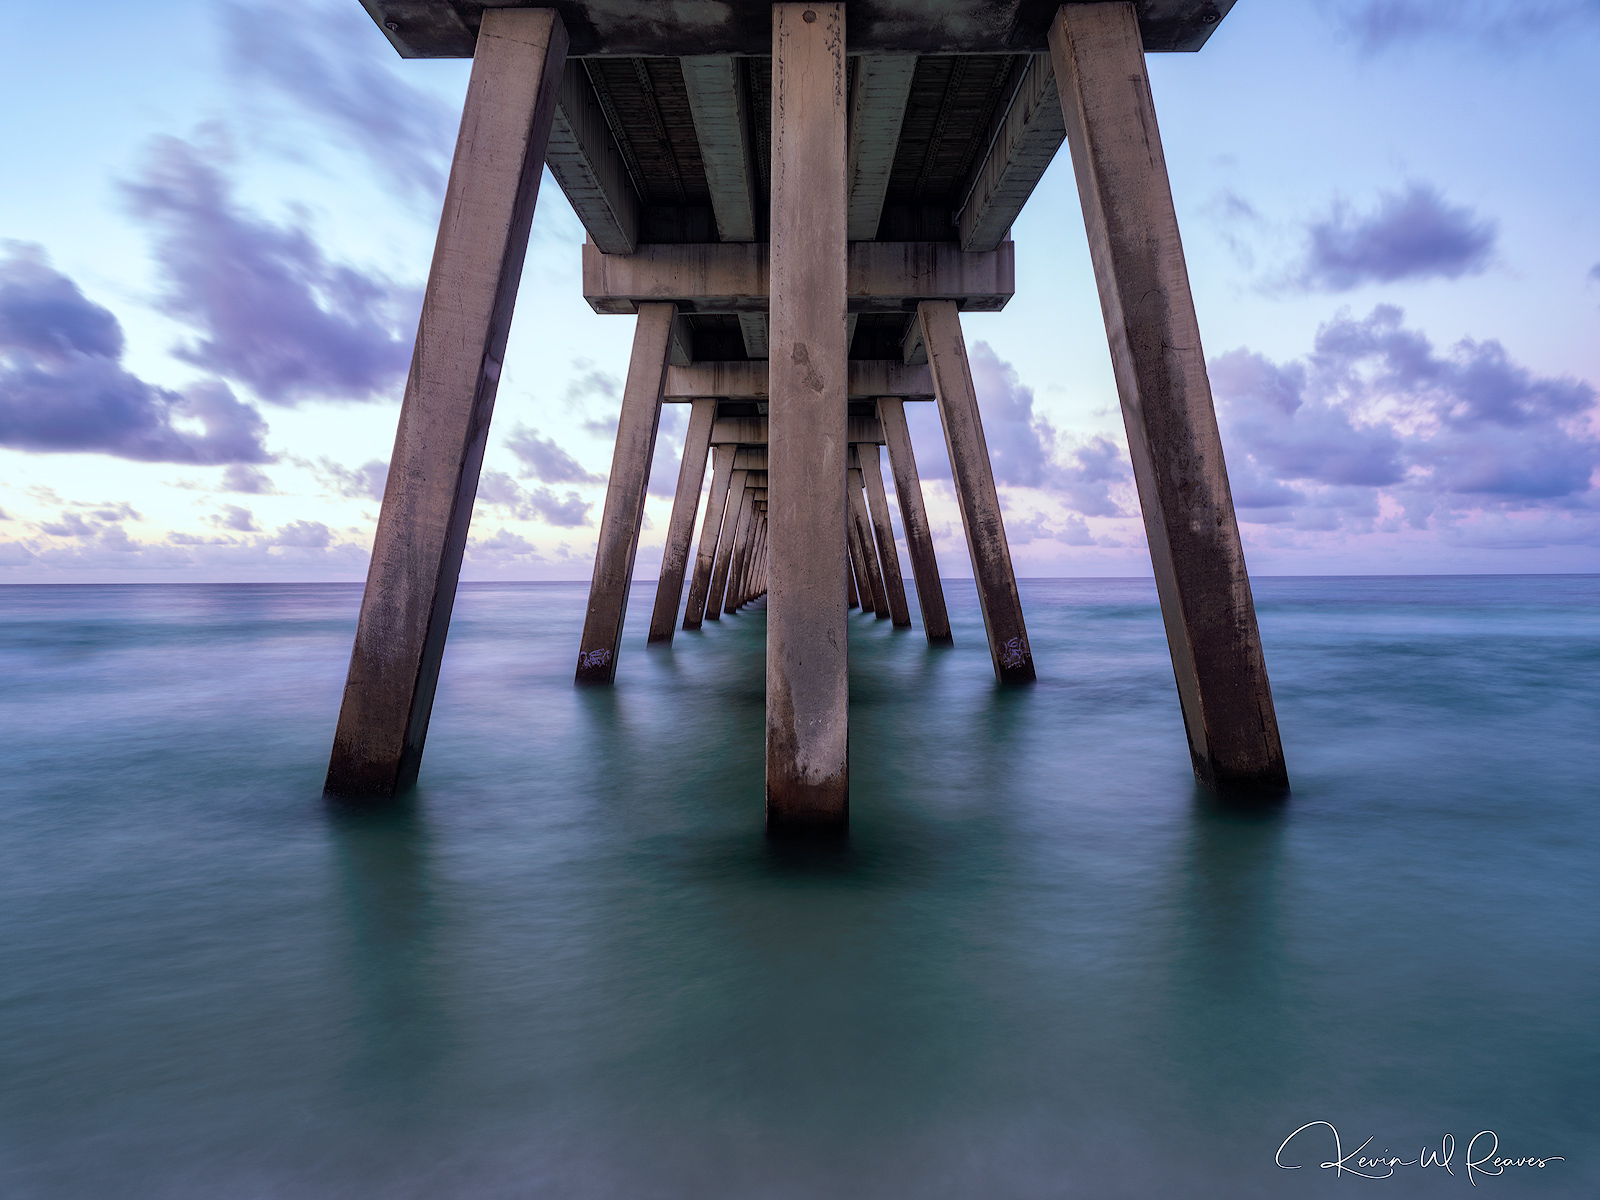 A shot underneath the Pier in Pensacola.